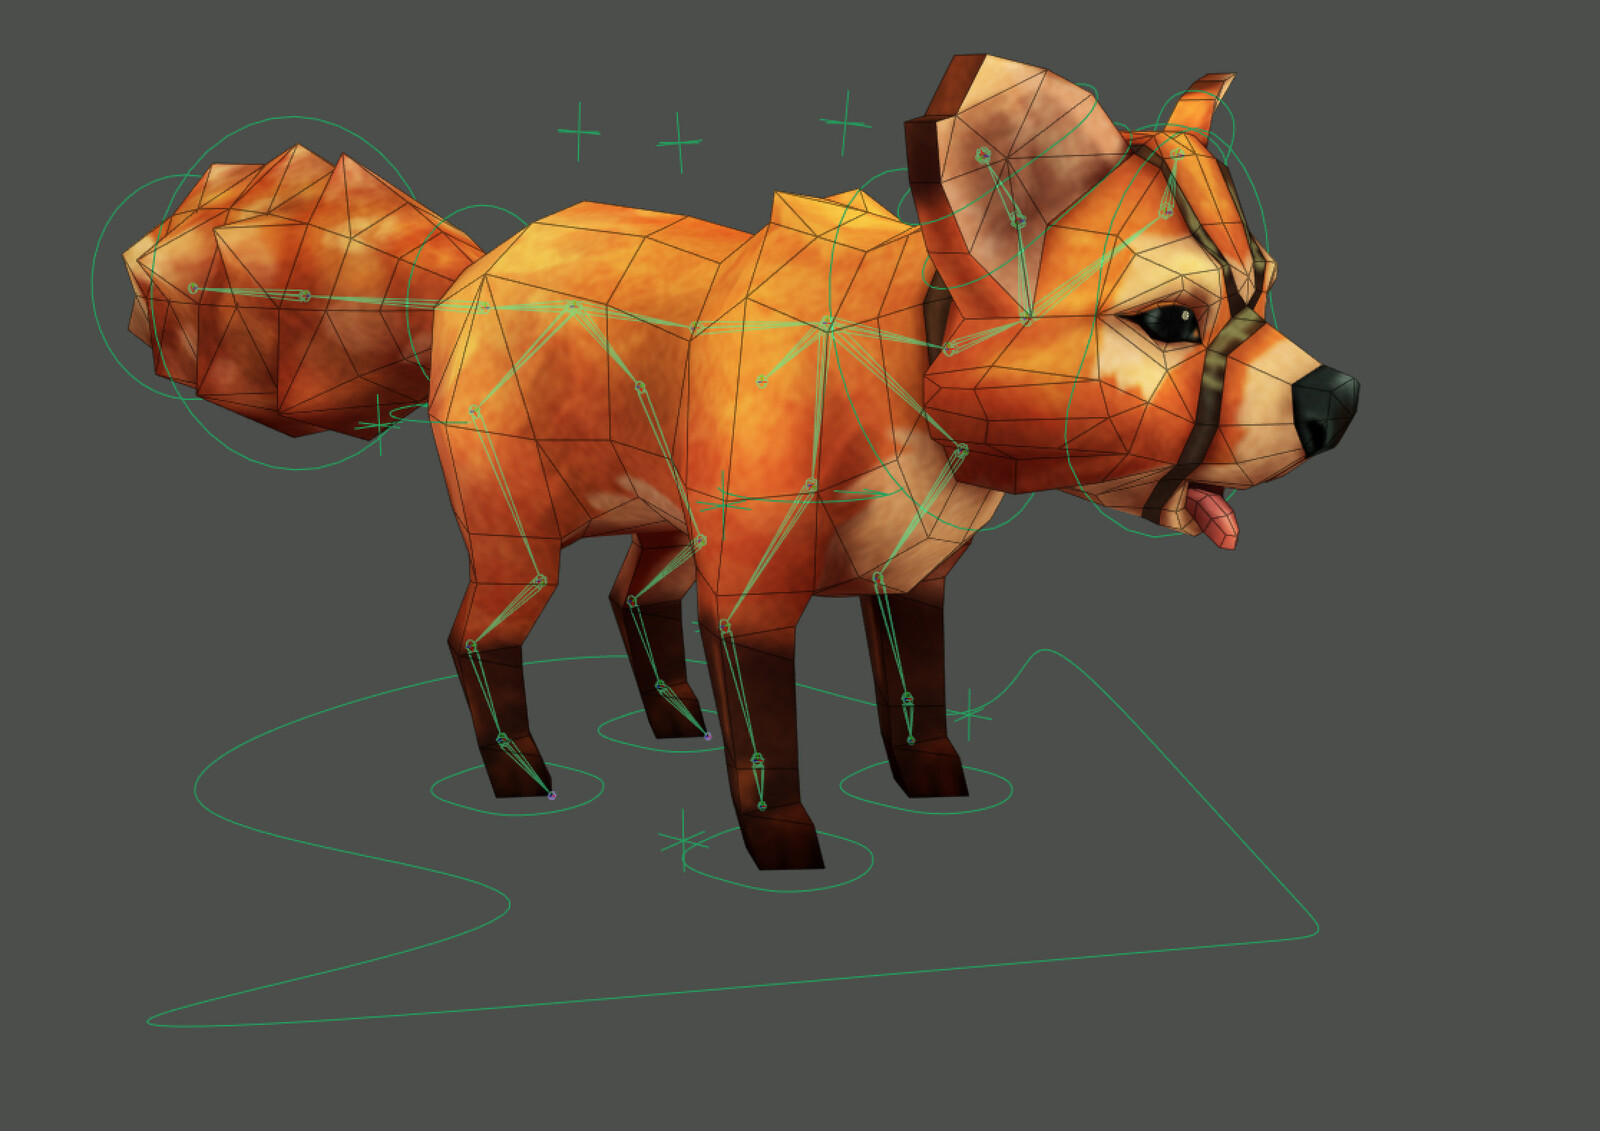 fox - 1150 tris - 512x512 color - 28 bones